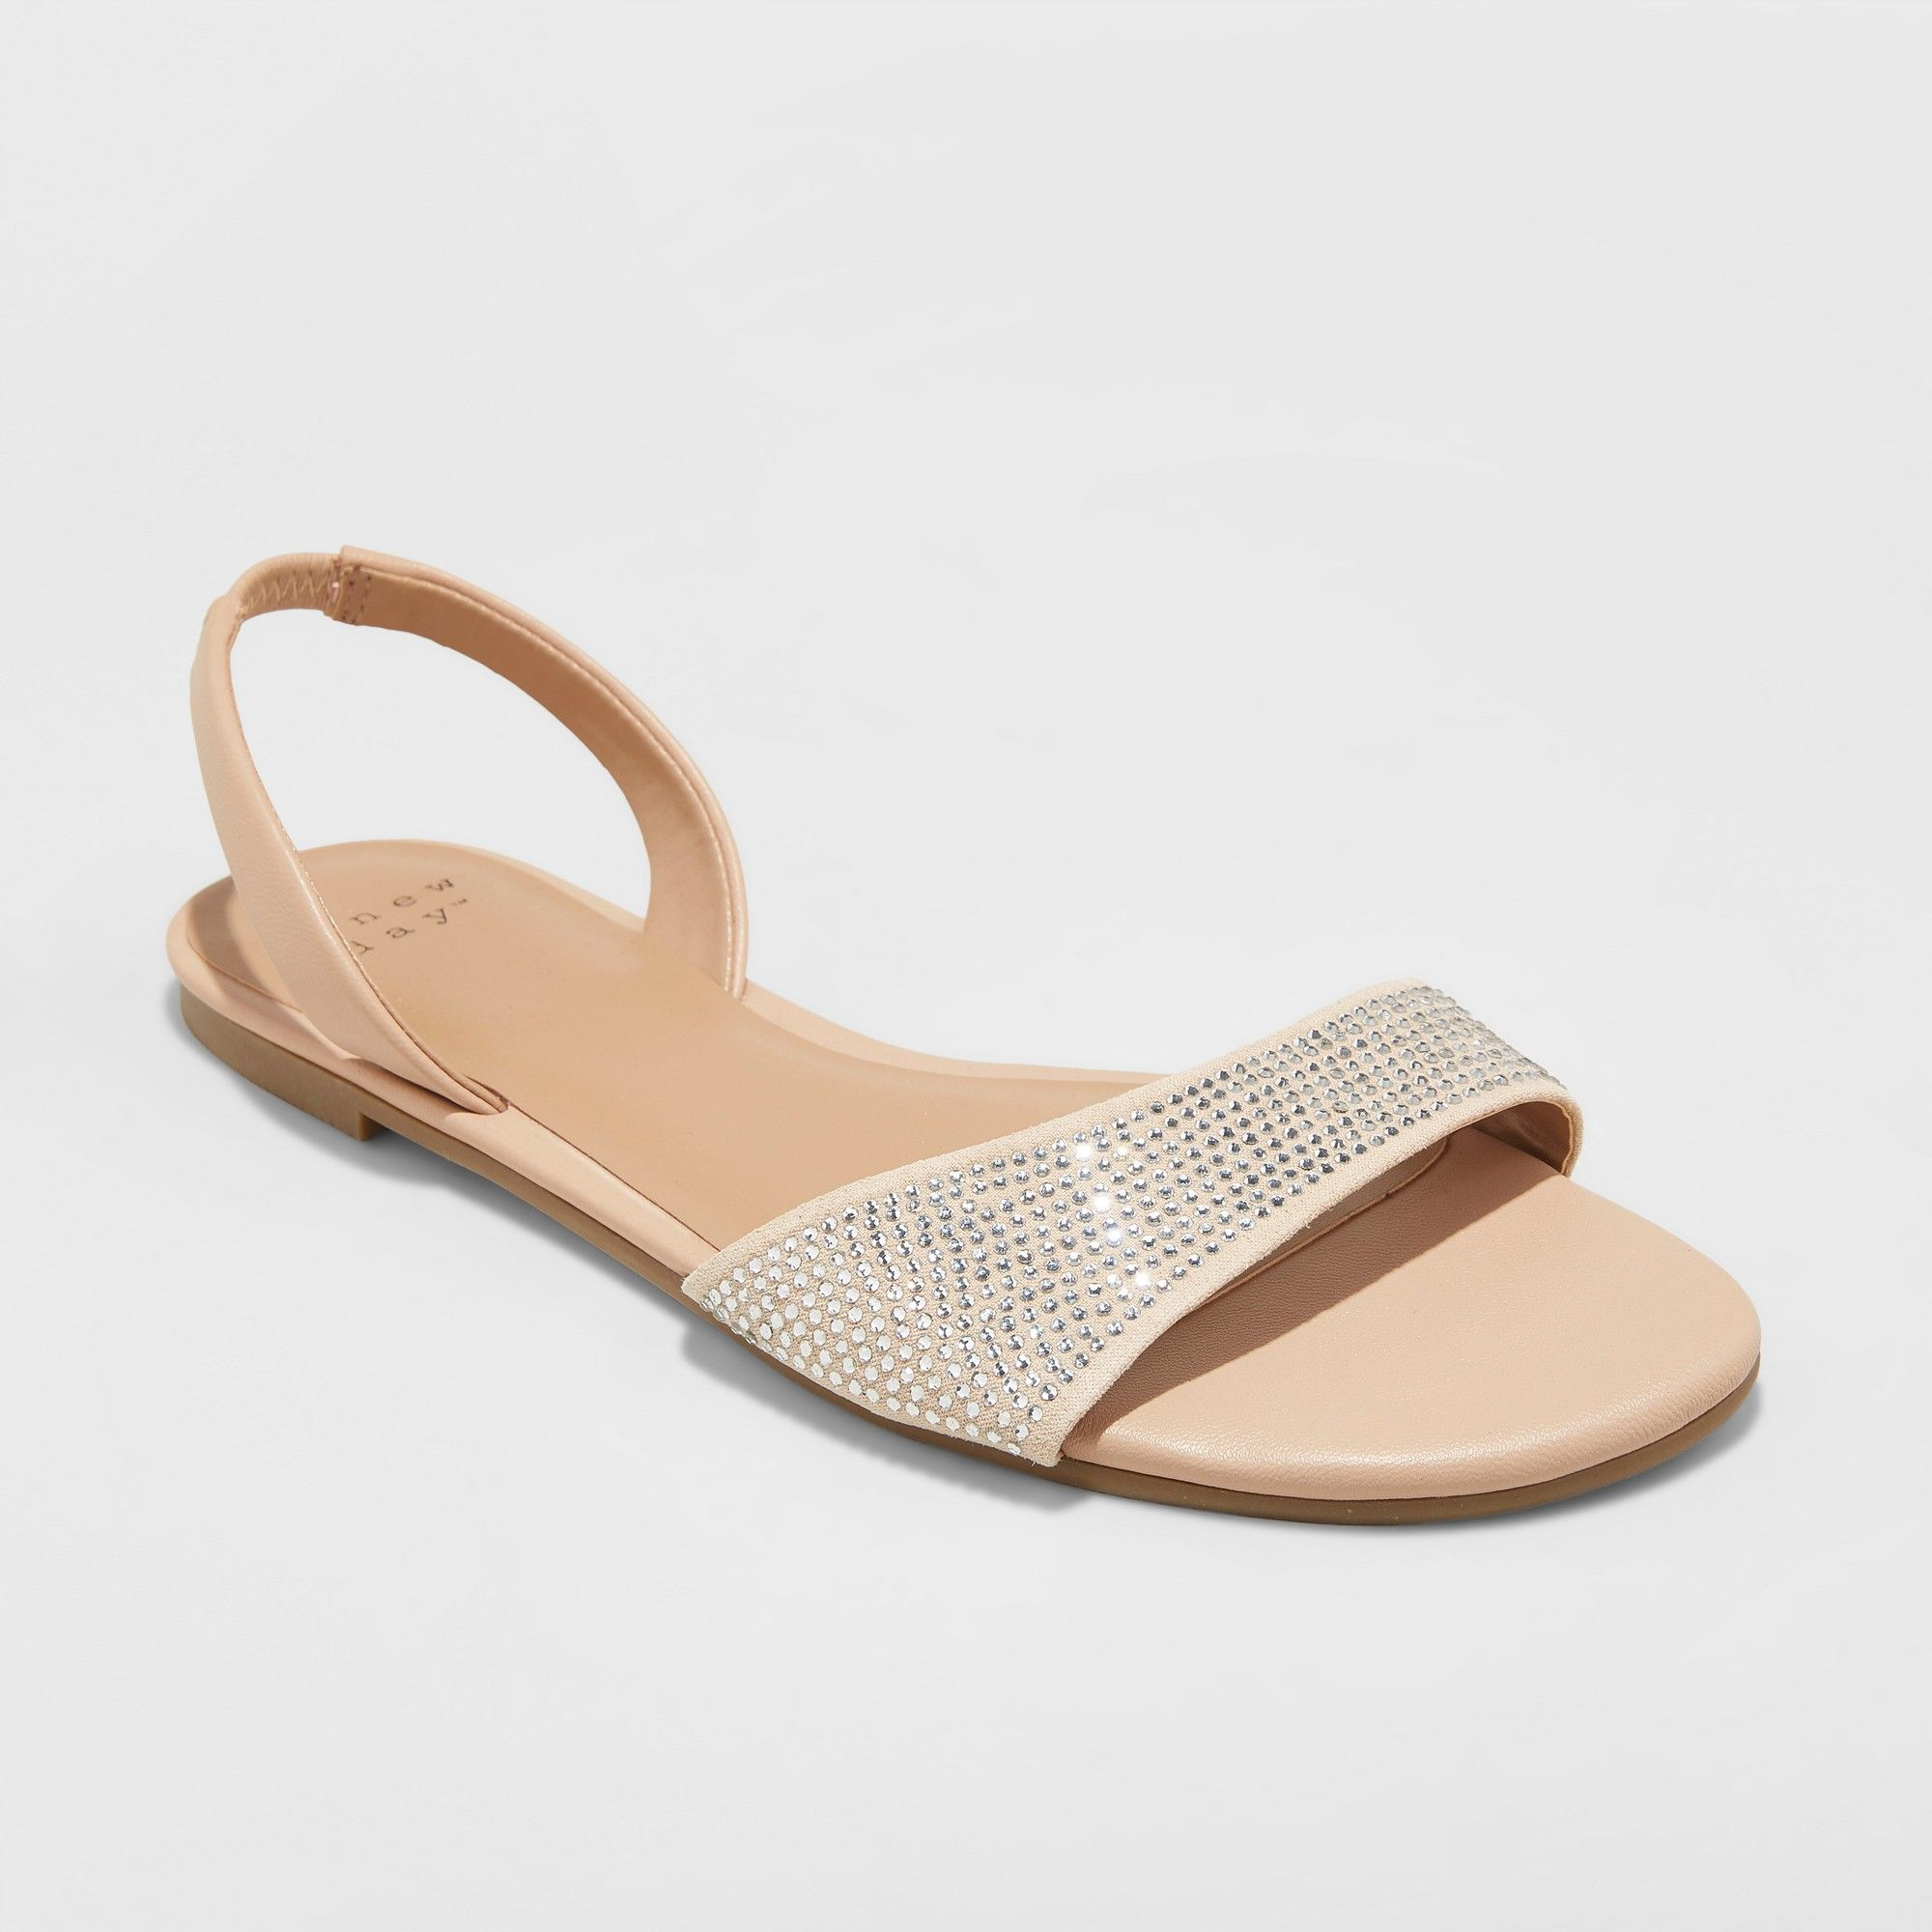 2ead2279d Women's Gabriella Embellished Slide Sandals - A New Day Gold 6 in ...